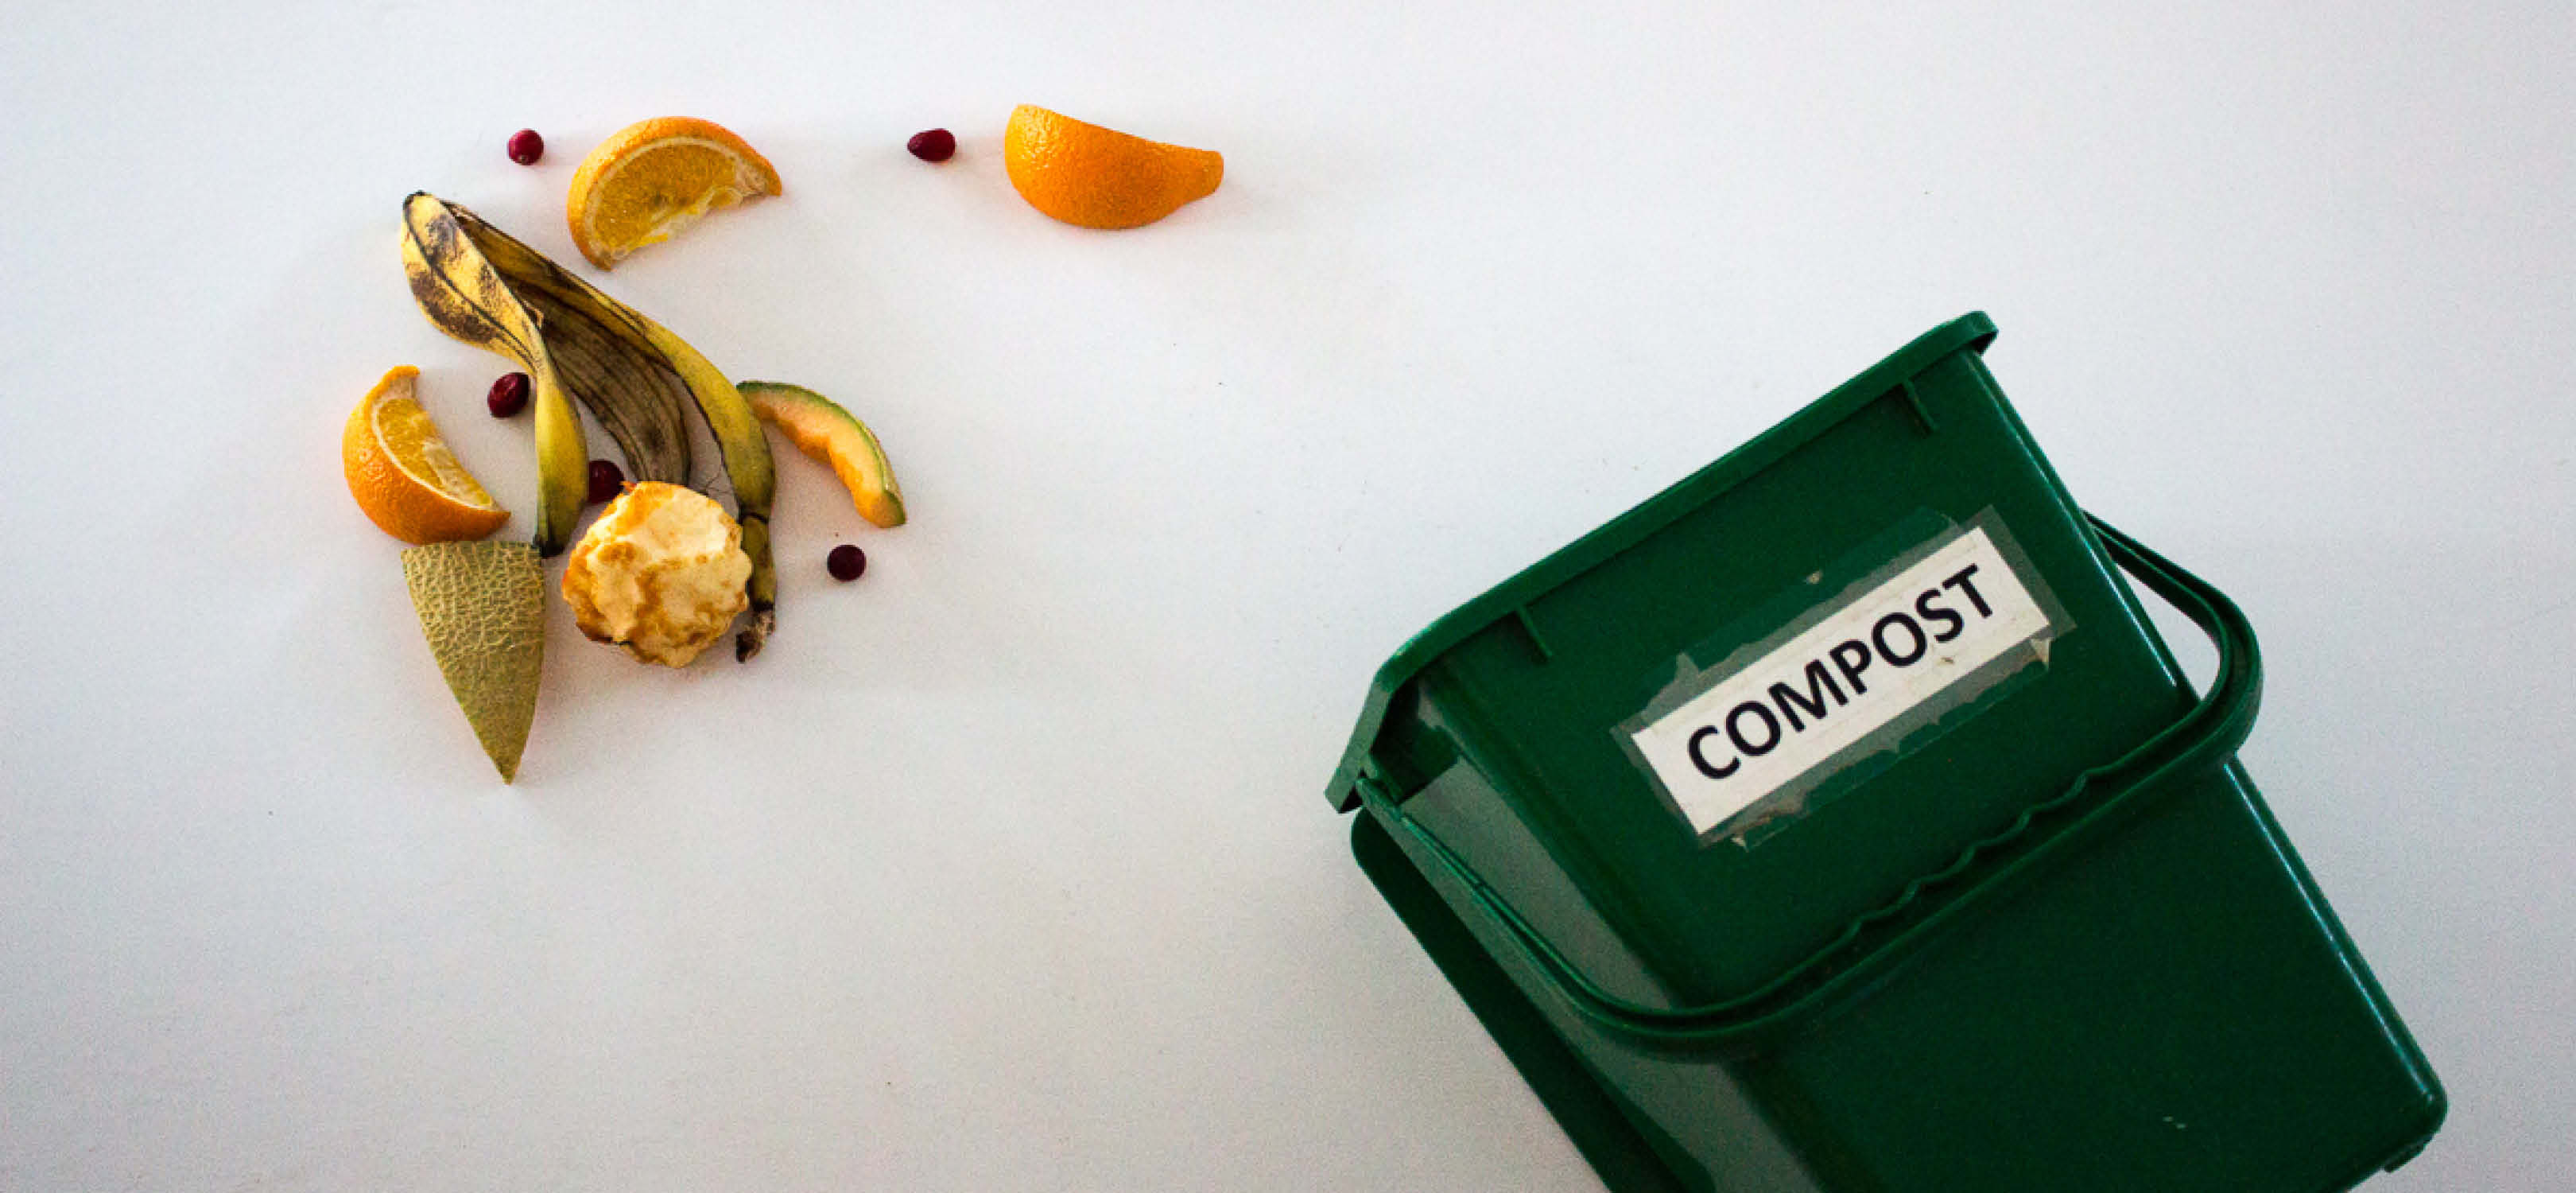 compost-banner